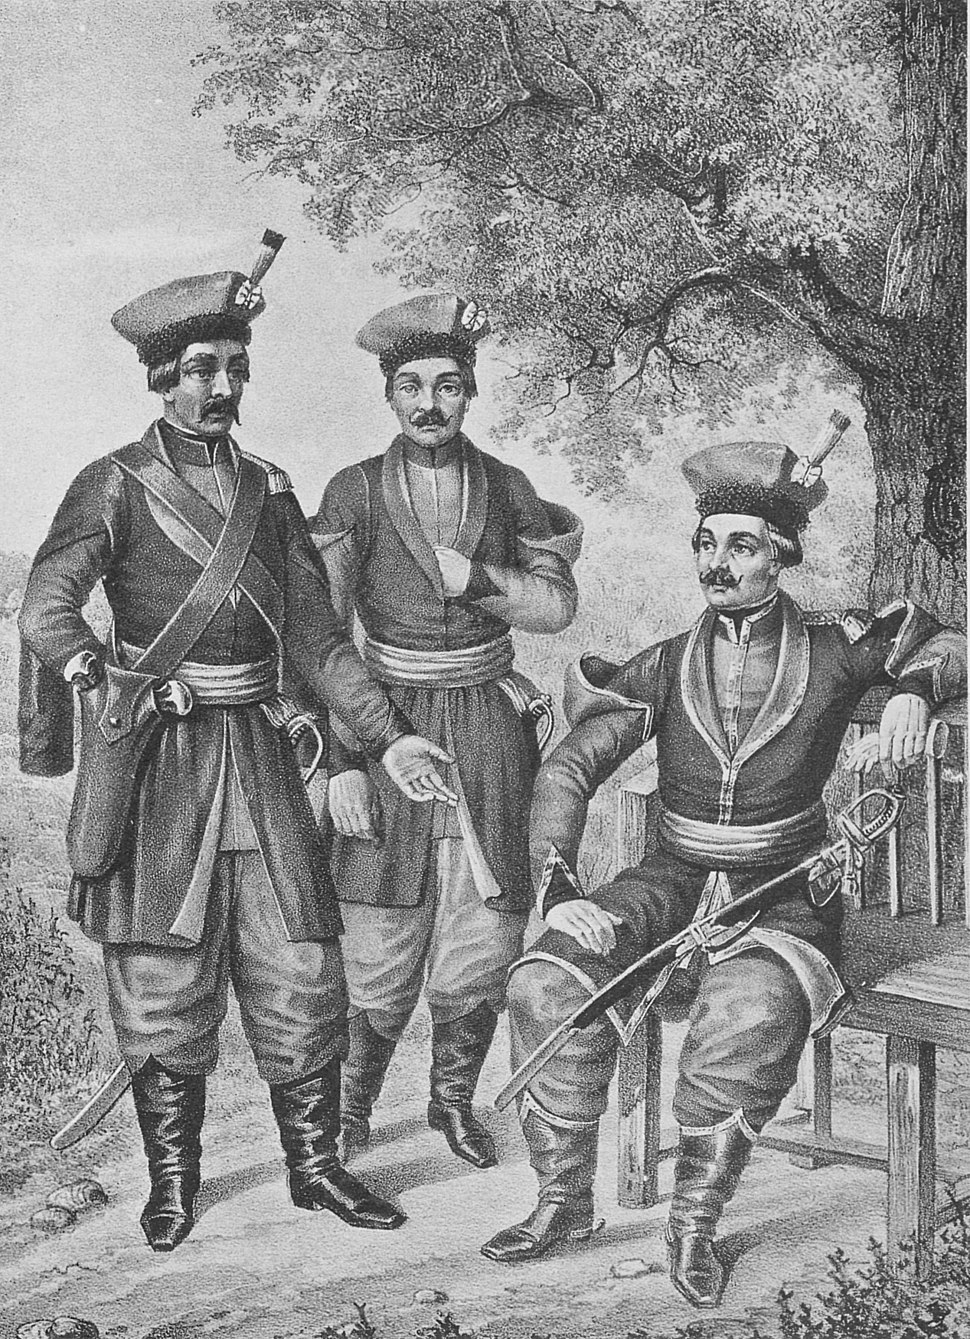 05 683 Book illustrations of Historical description of the clothes and weapons of Russian troops